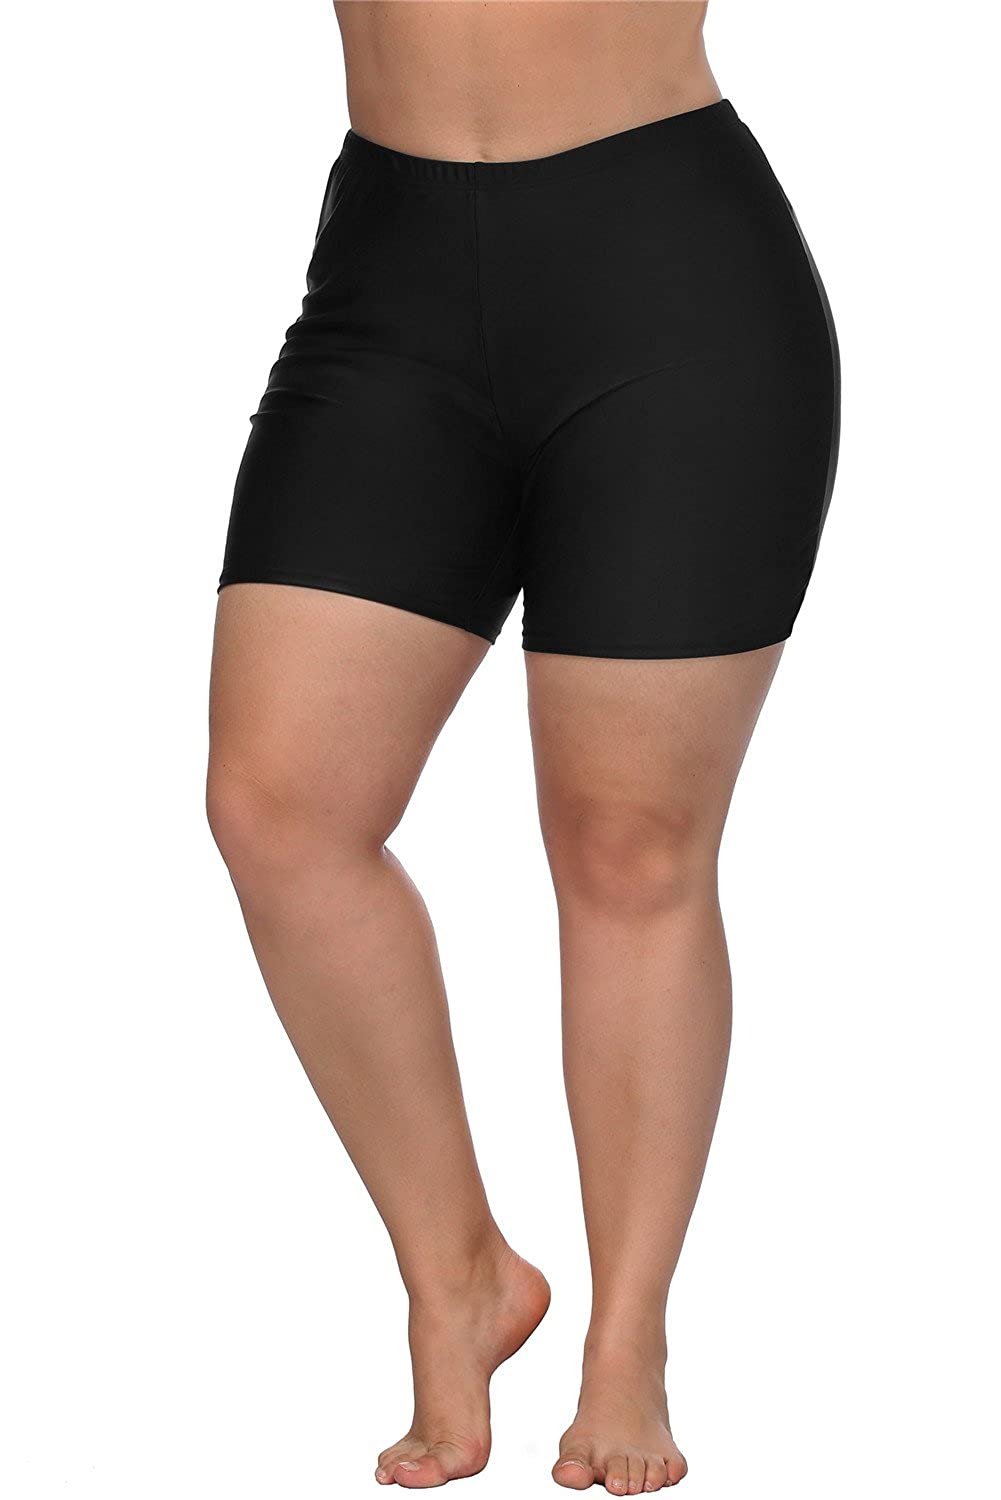 ALove Women Plus Size Swim Shorts High Waist Board Shorts Stretchy Swimsuit Bottoms